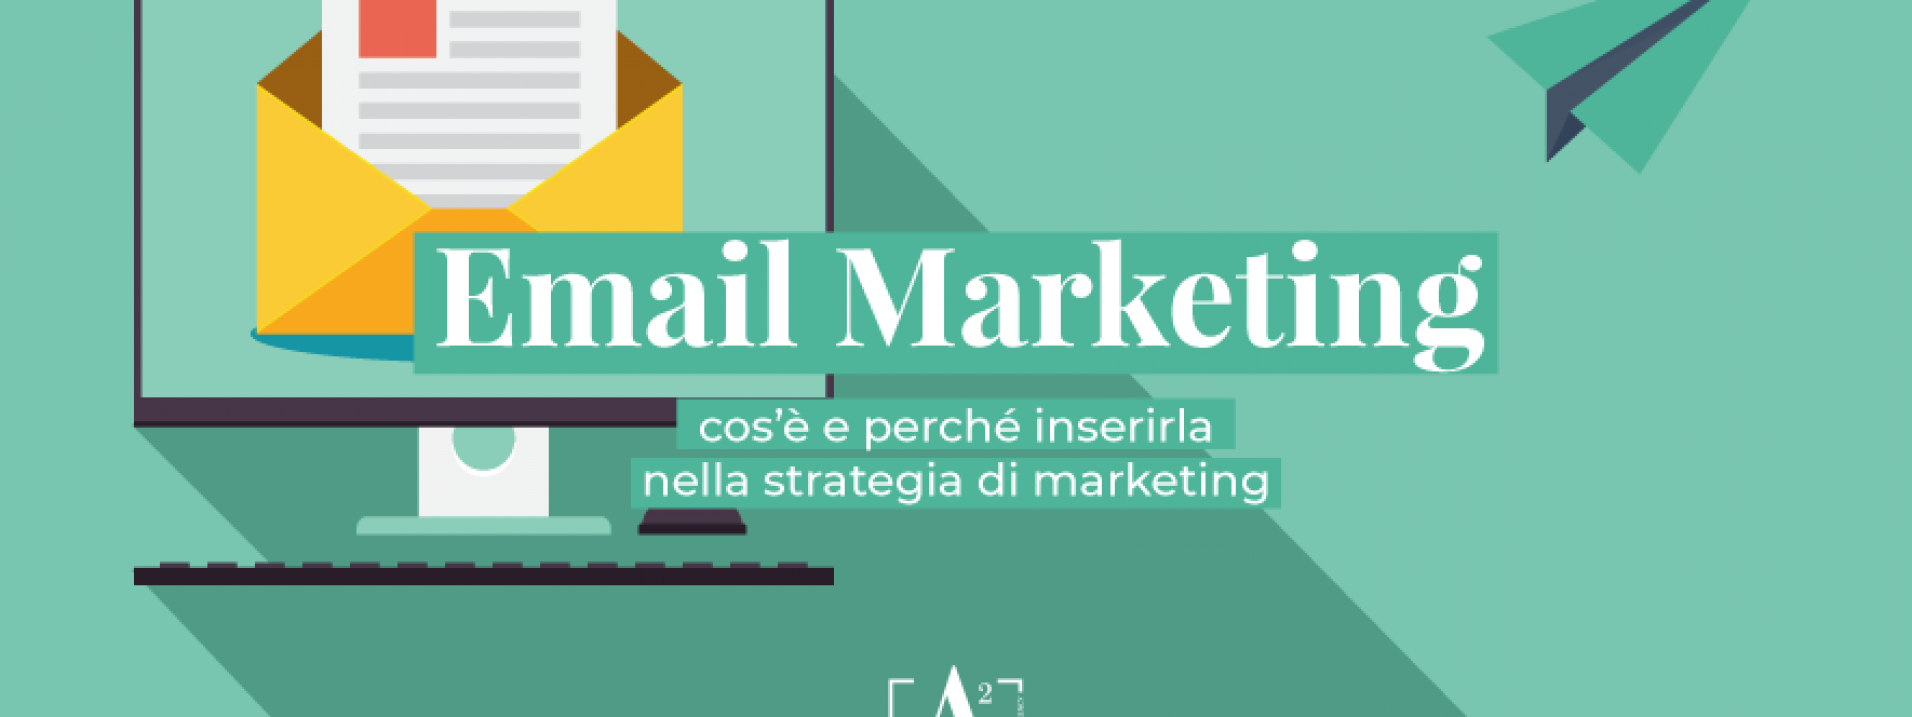 immagine-vettoriale-email-marketing-allaseconda